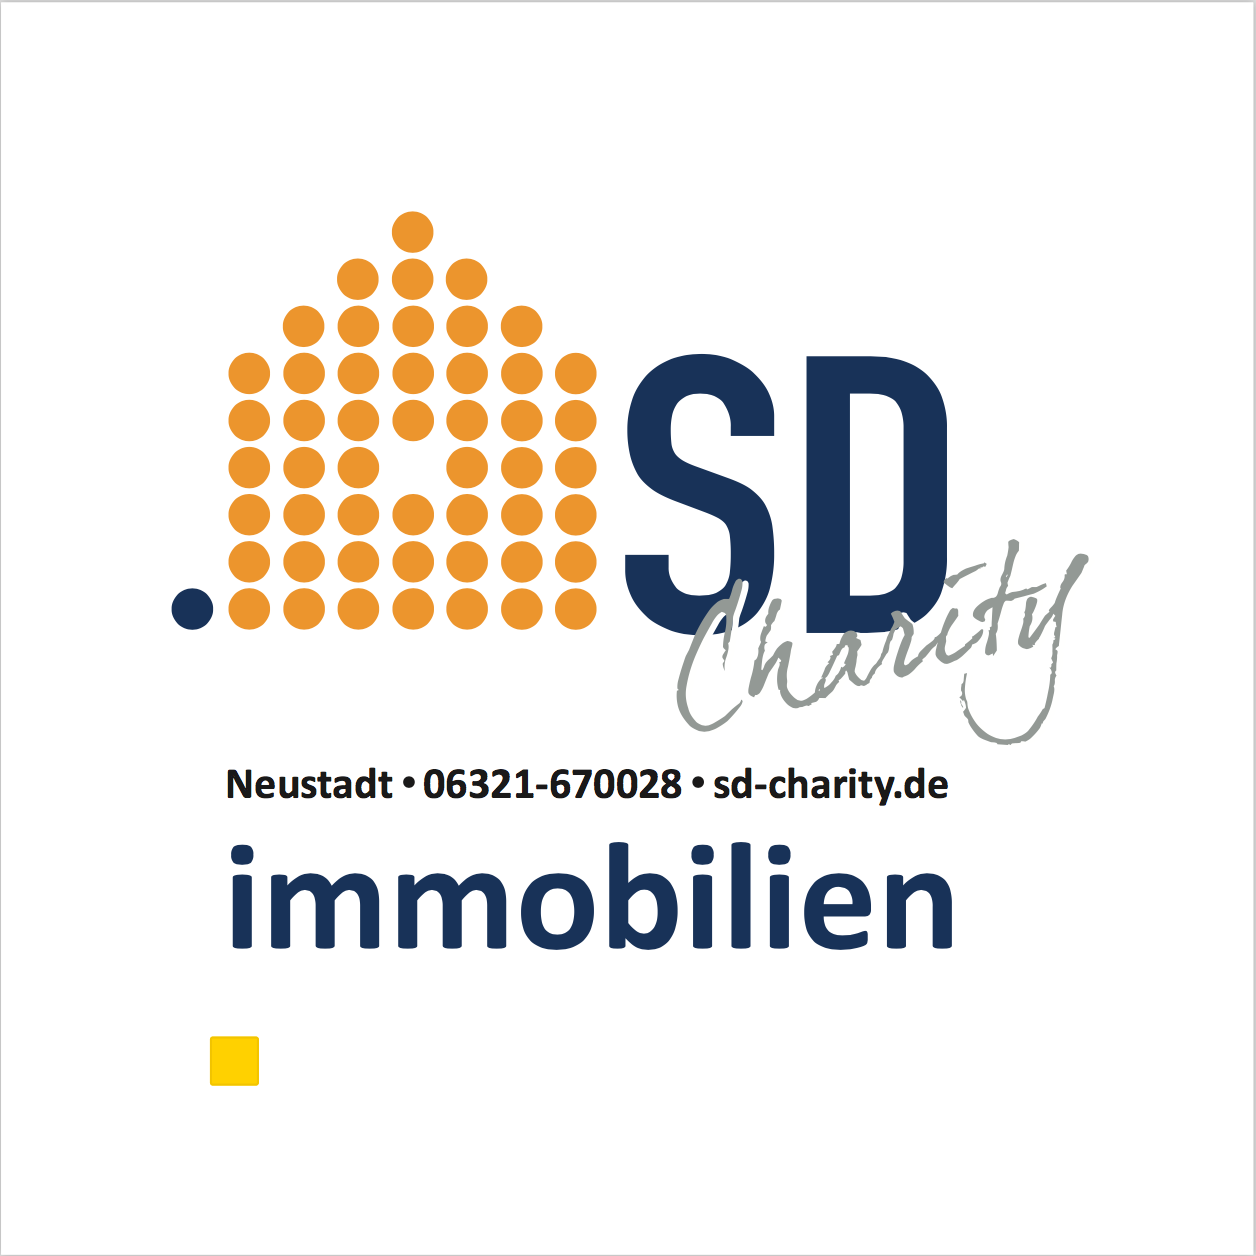 sd-charity